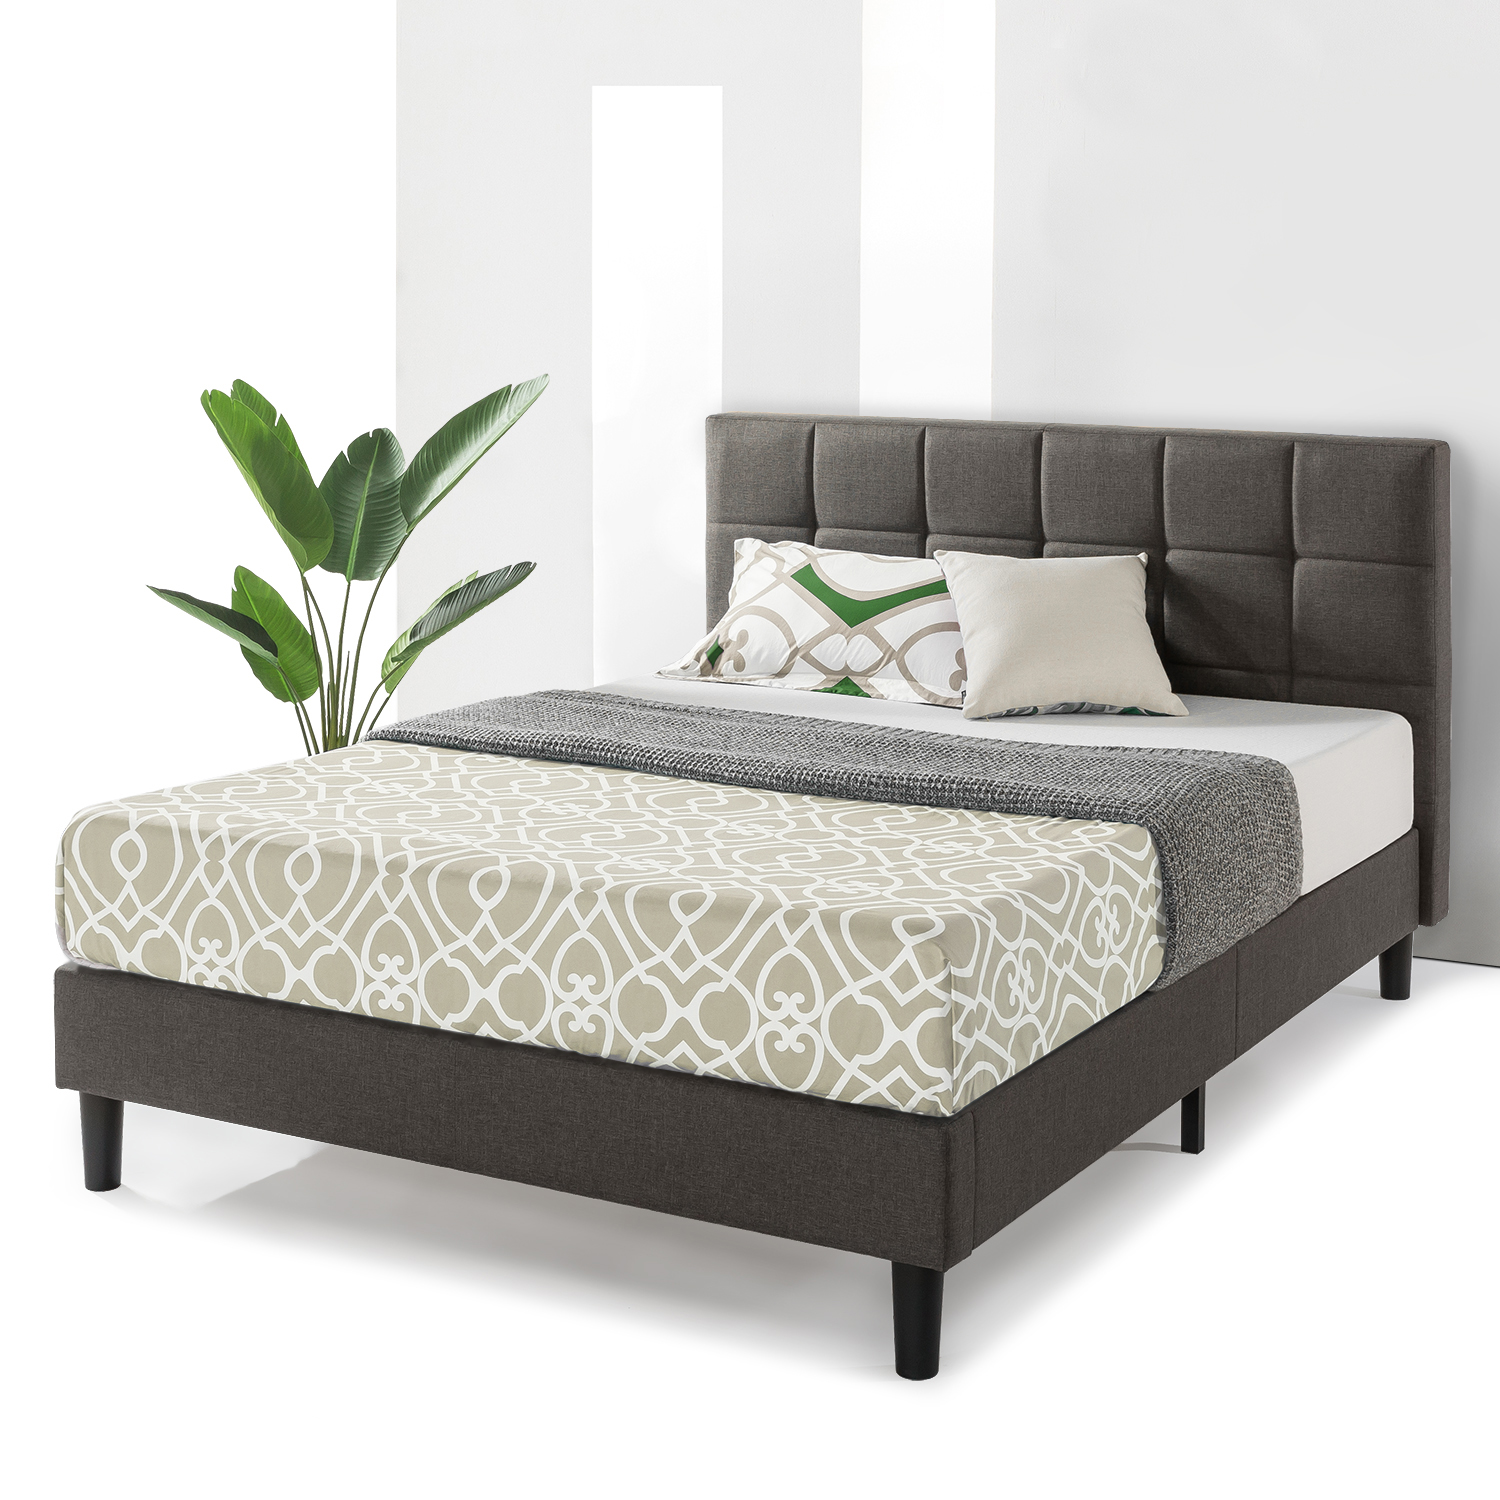 Best Price Mattress Zoe Upholstered Platform Beds With Tufted Headboard And  Wooden Slats Support